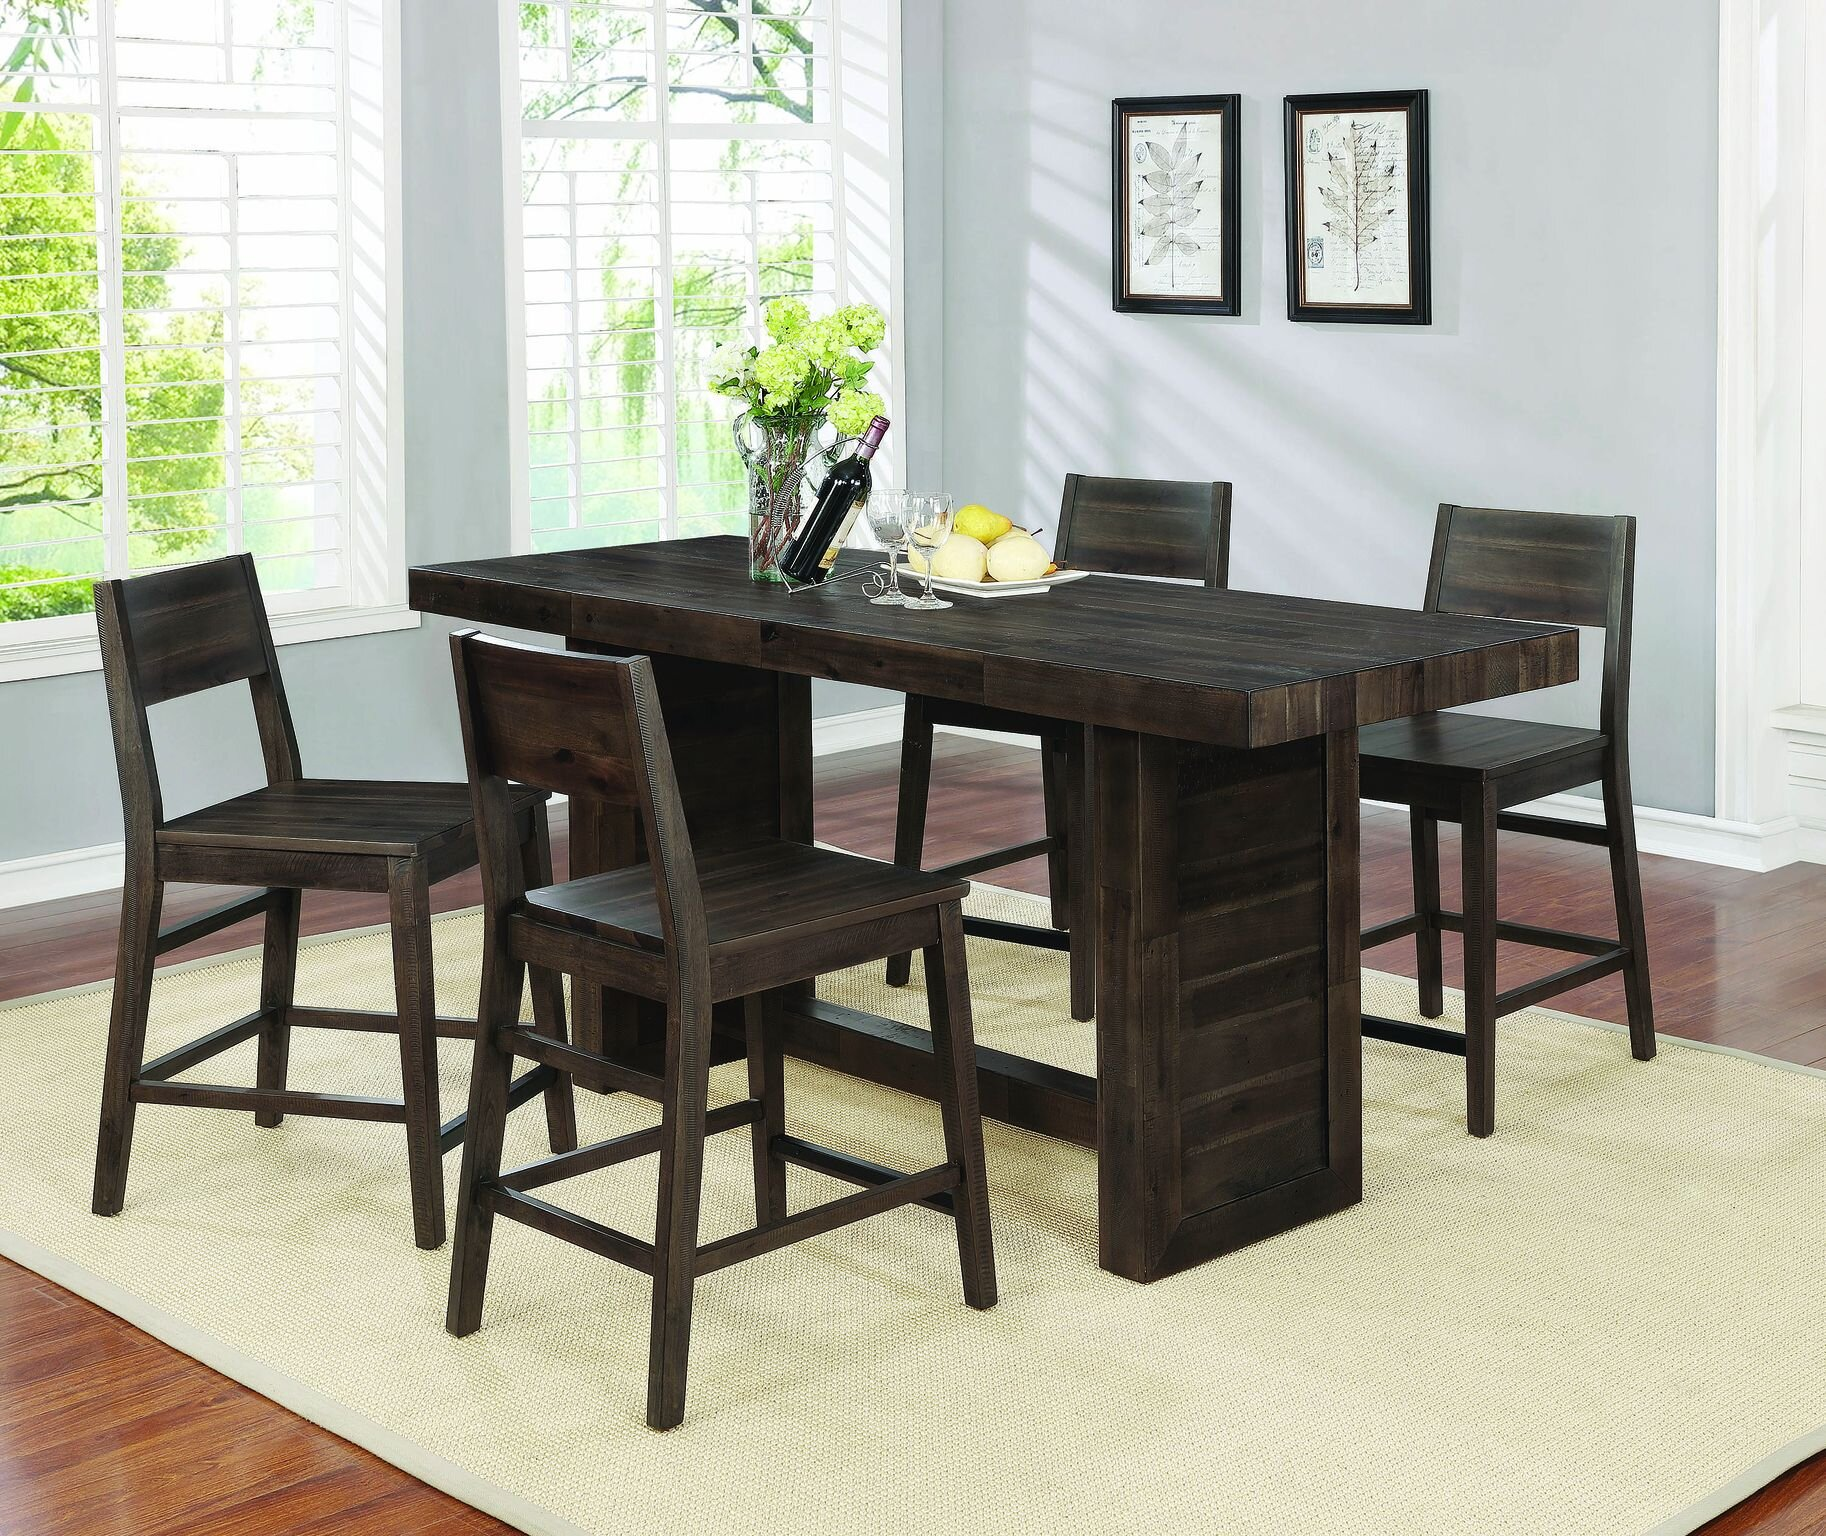 Cabin Lodge Counter Height Kitchen Dining Room Sets You Ll Love In 2021 Wayfair